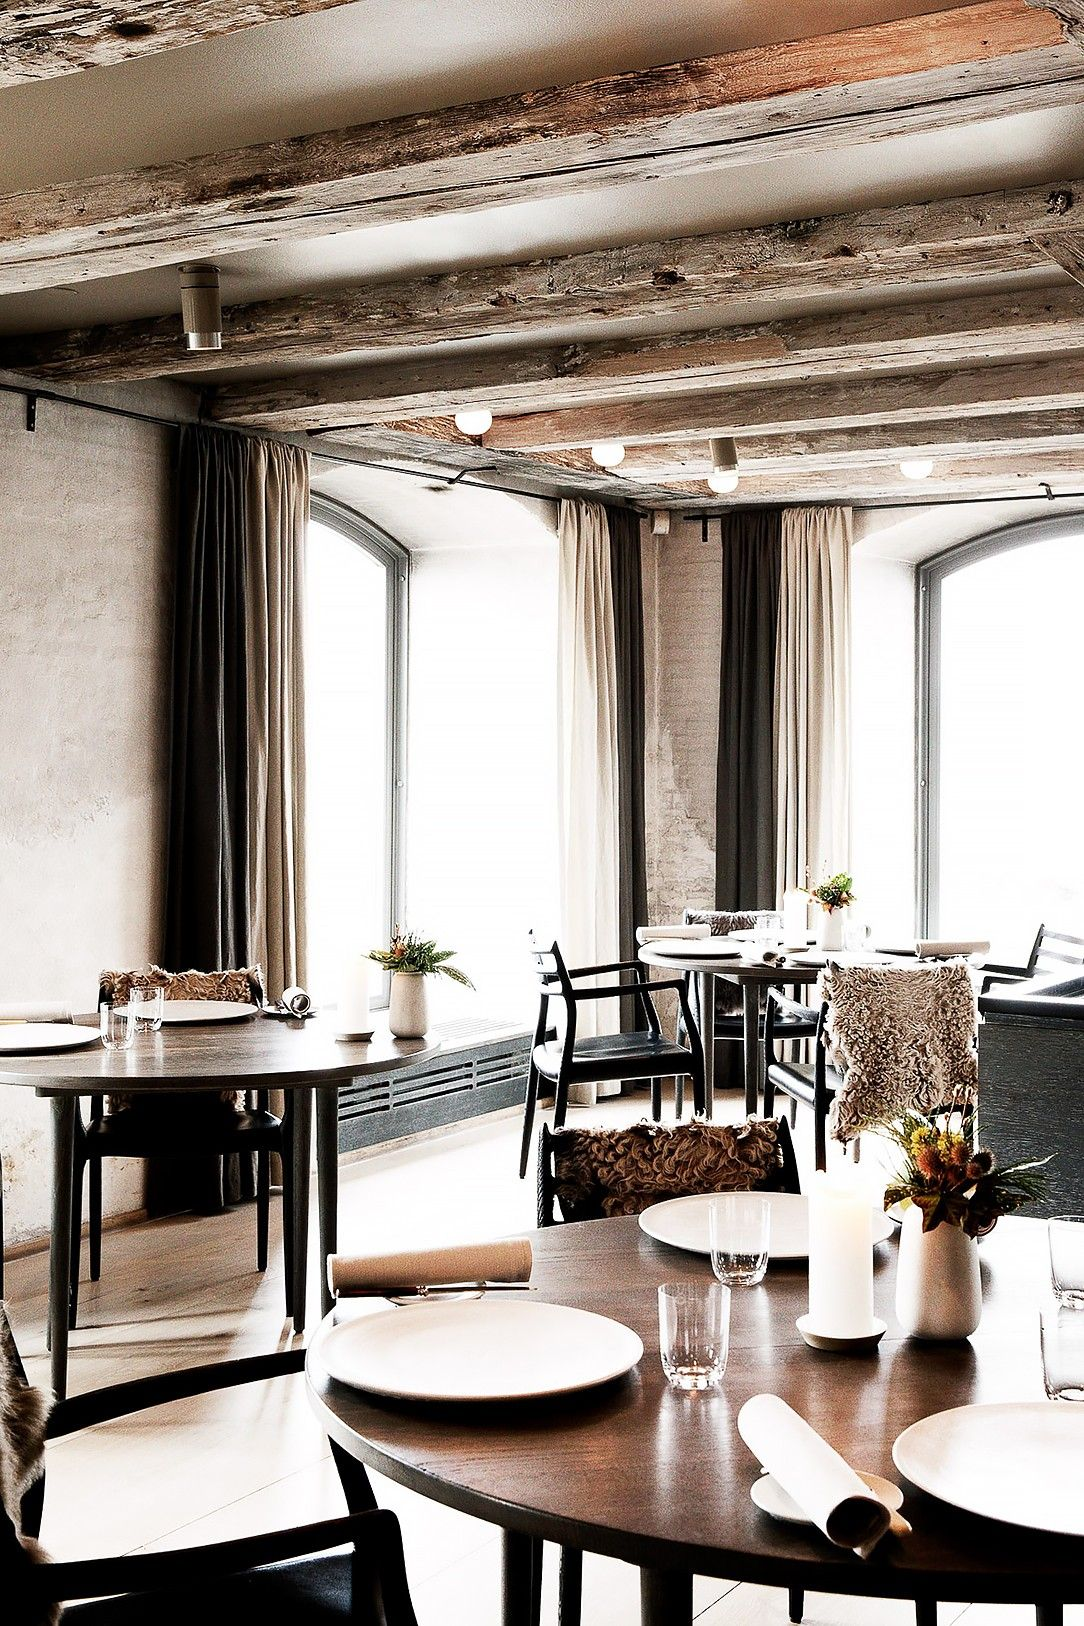 Get Ready For Dumplings These Are The Best Chinese Restaurants In Nyc Restaurant Table Setting Noma Restaurant Luxury Restaurant